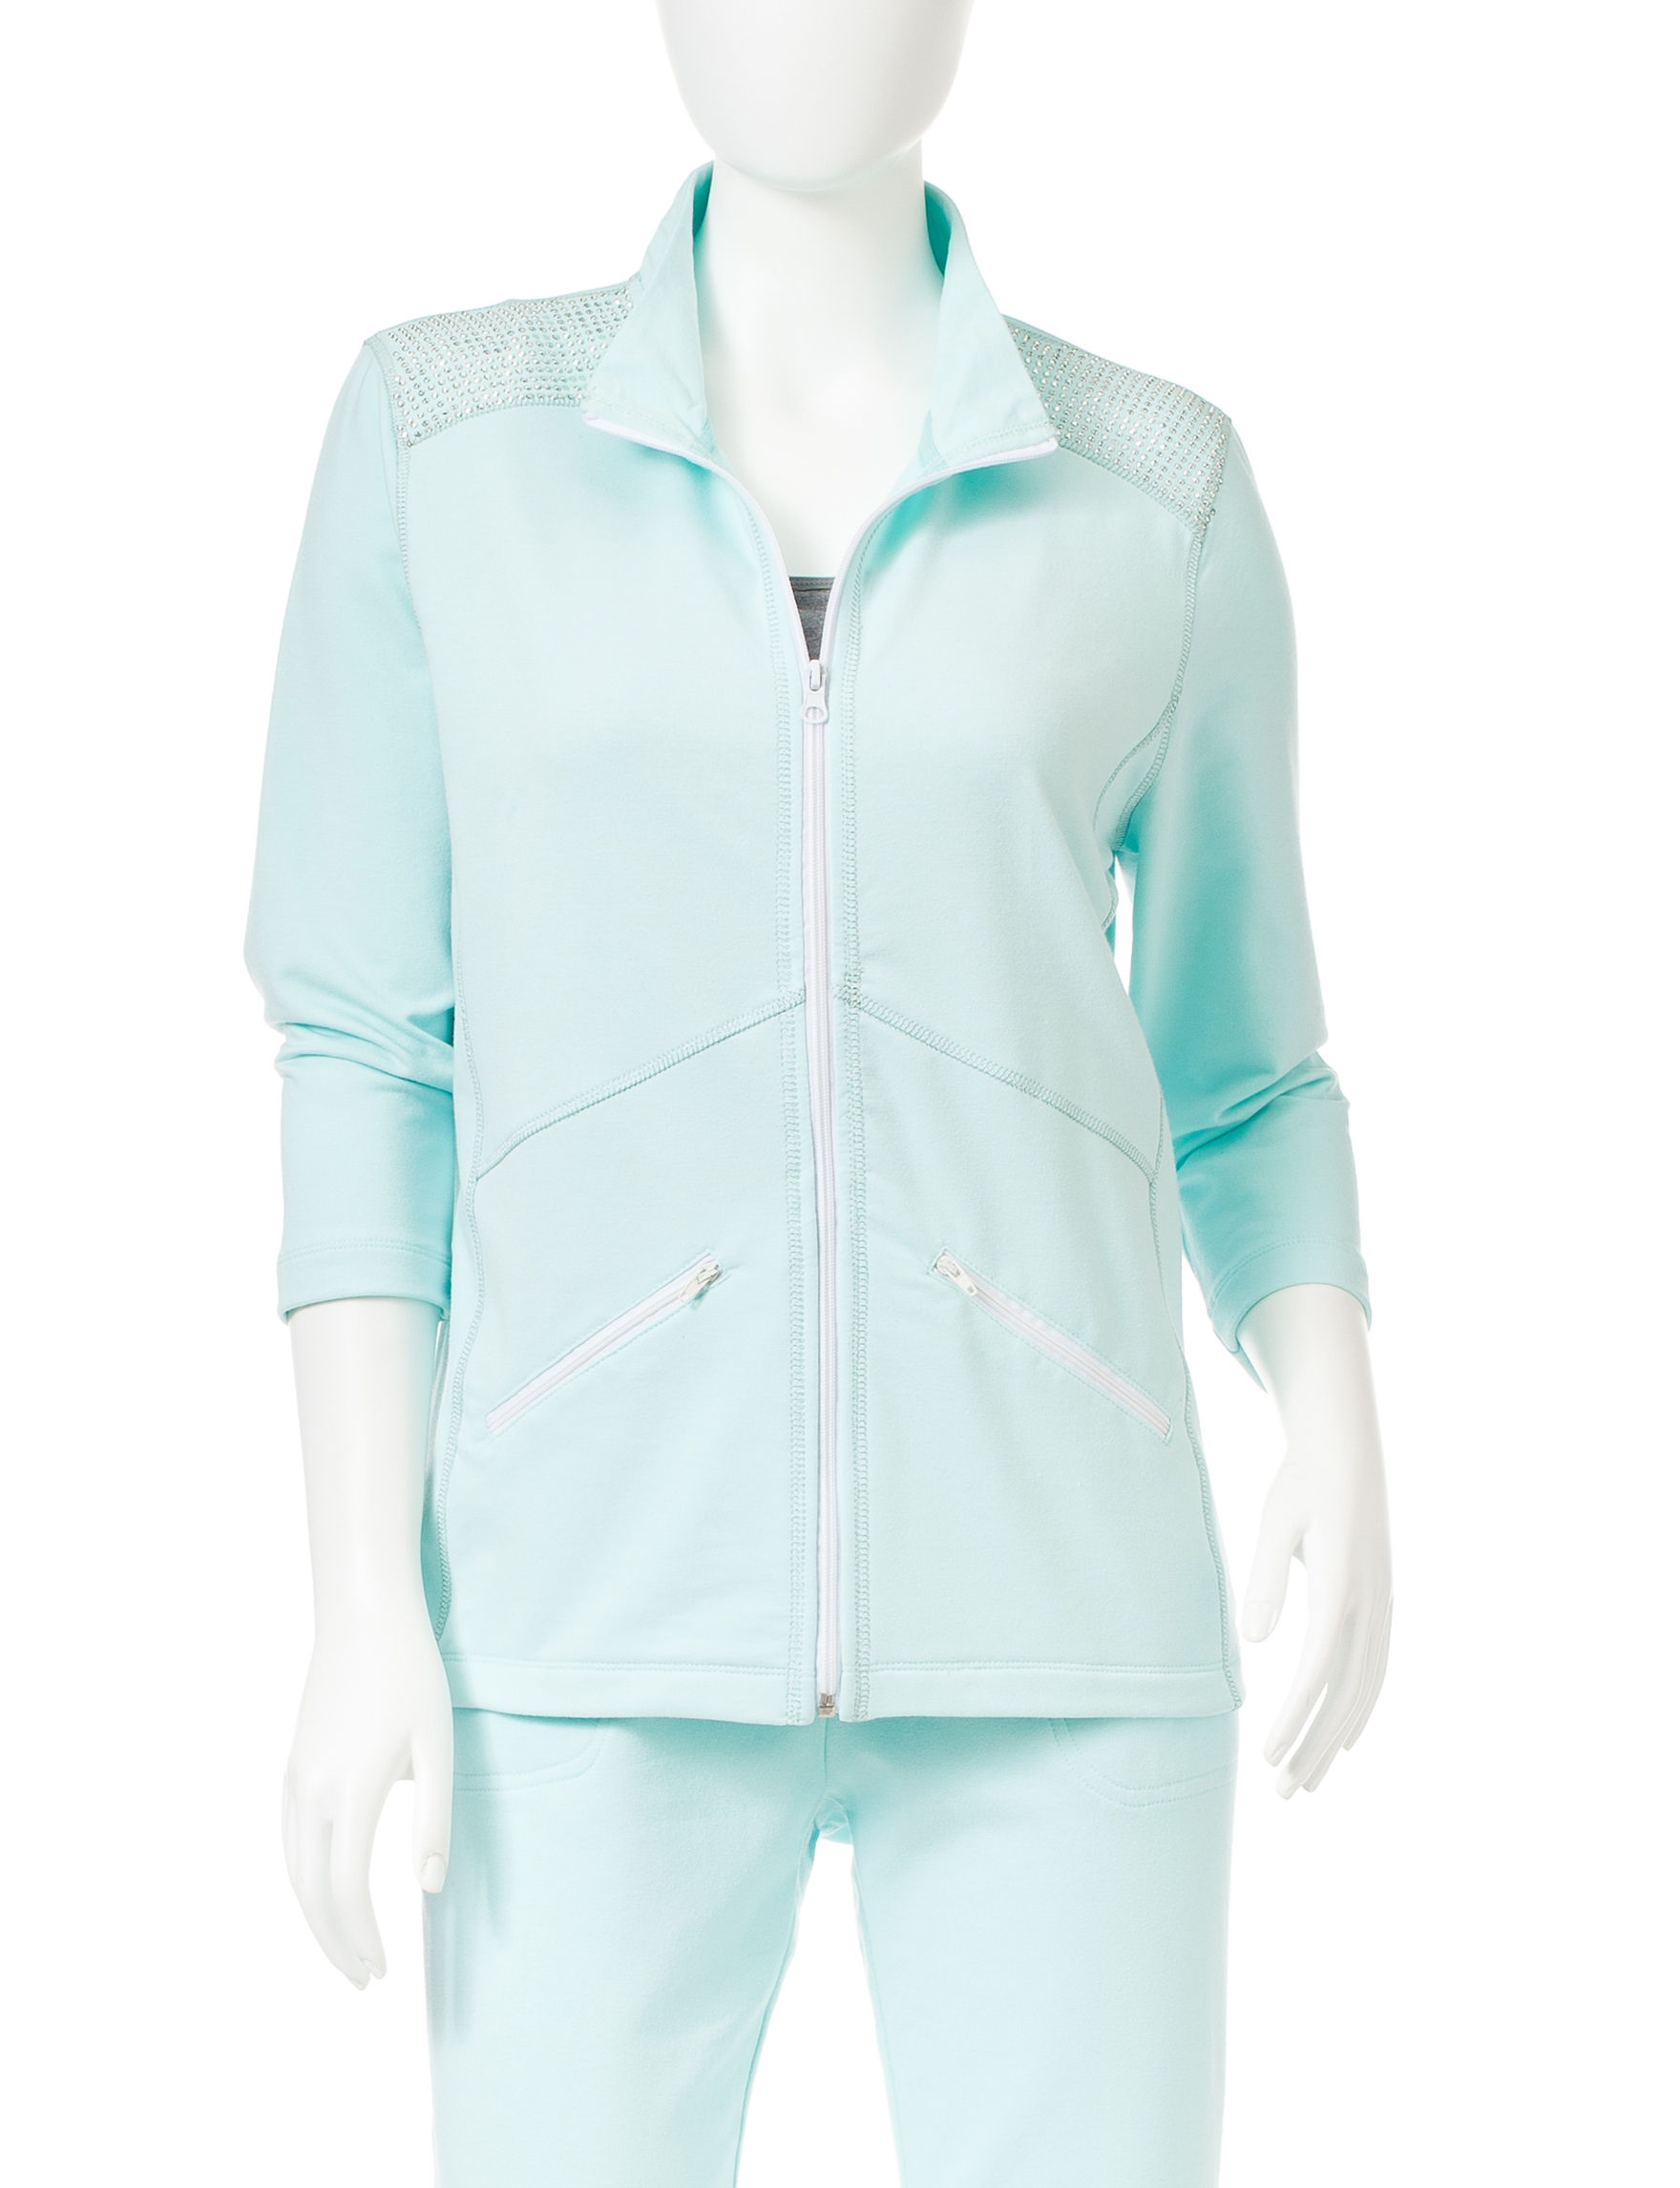 Onque Casuals Teal Lightweight Jackets & Blazers